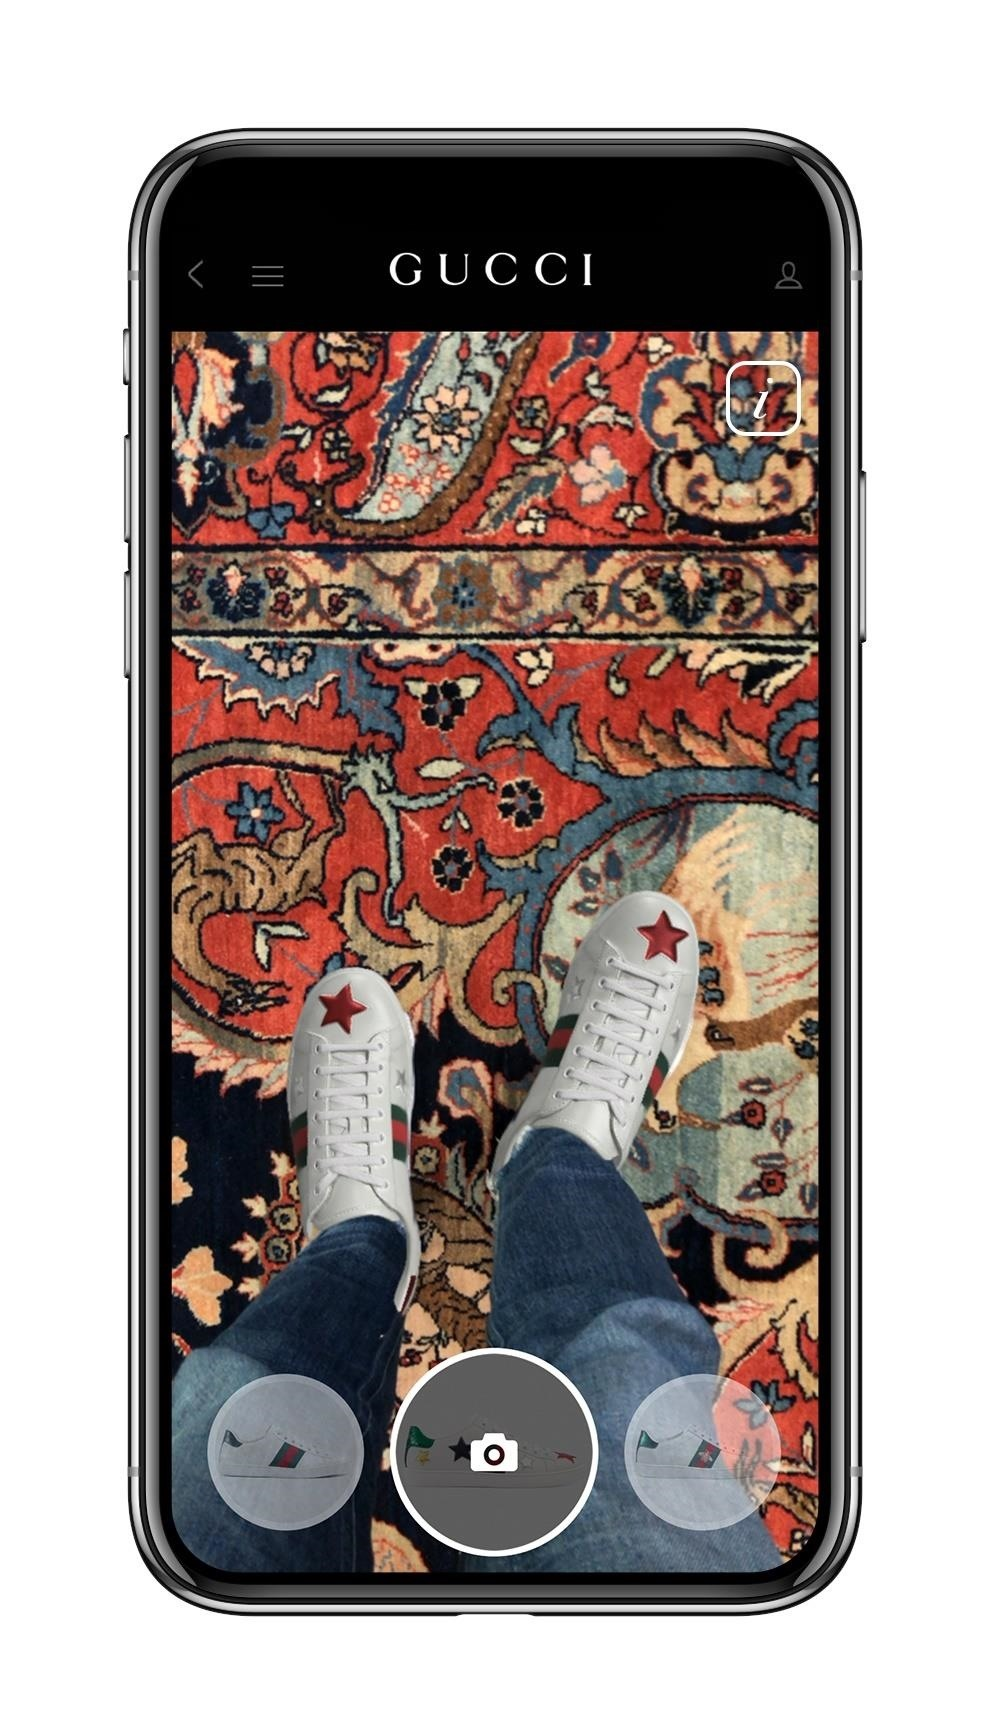 Apple iPhone Owners Can Now Try Out Gucci's Ace Sneakers via Augmented Reality